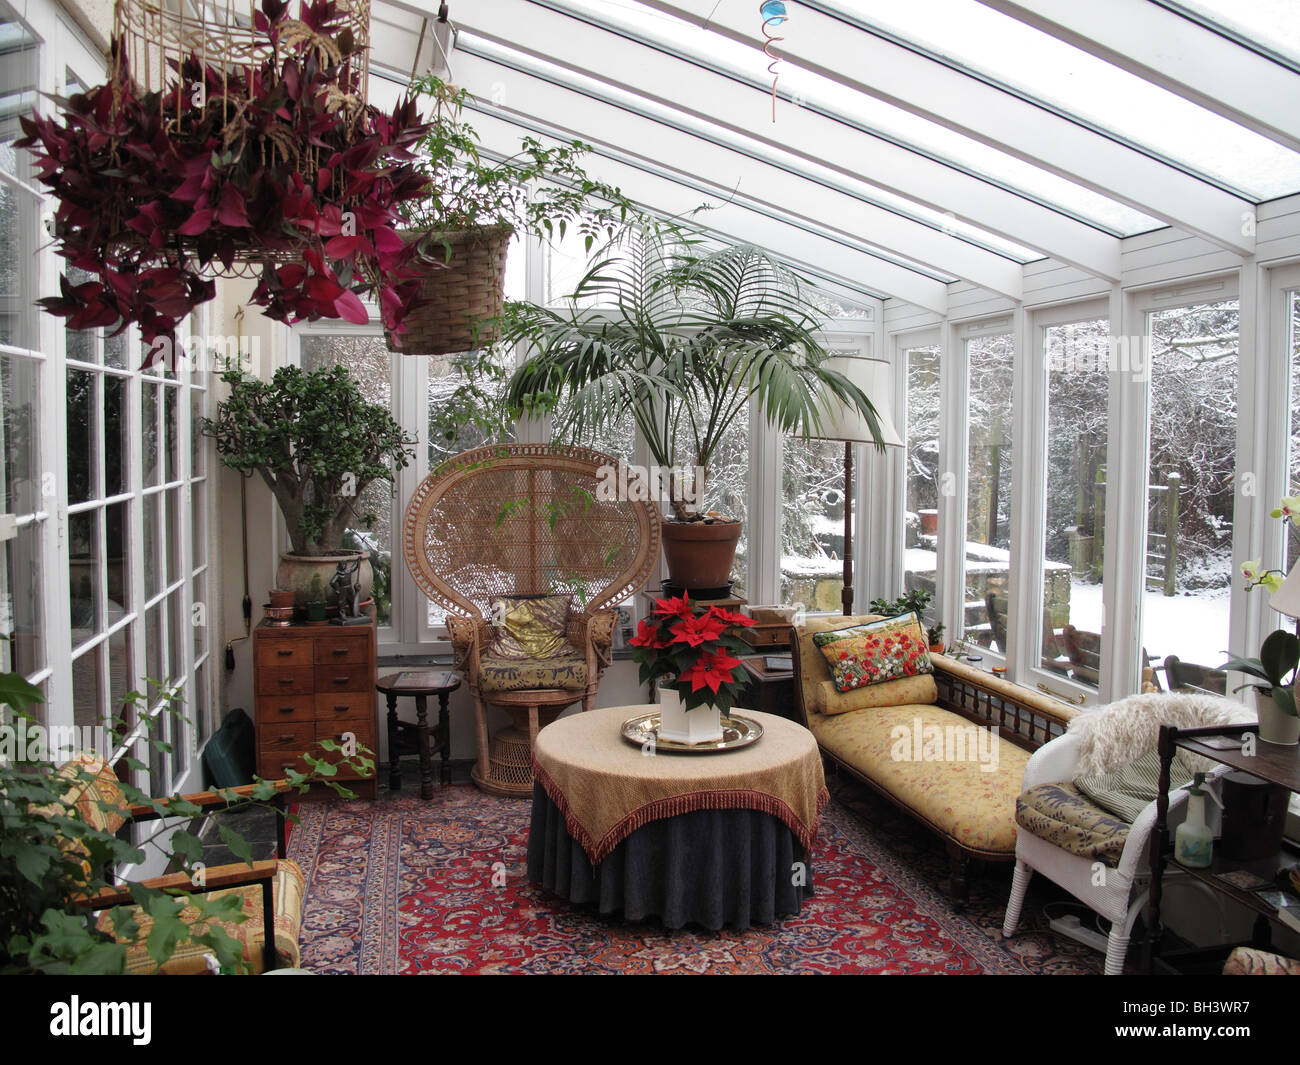 House plants conservatory stockfotos house plants - Wintergarten mobel ...